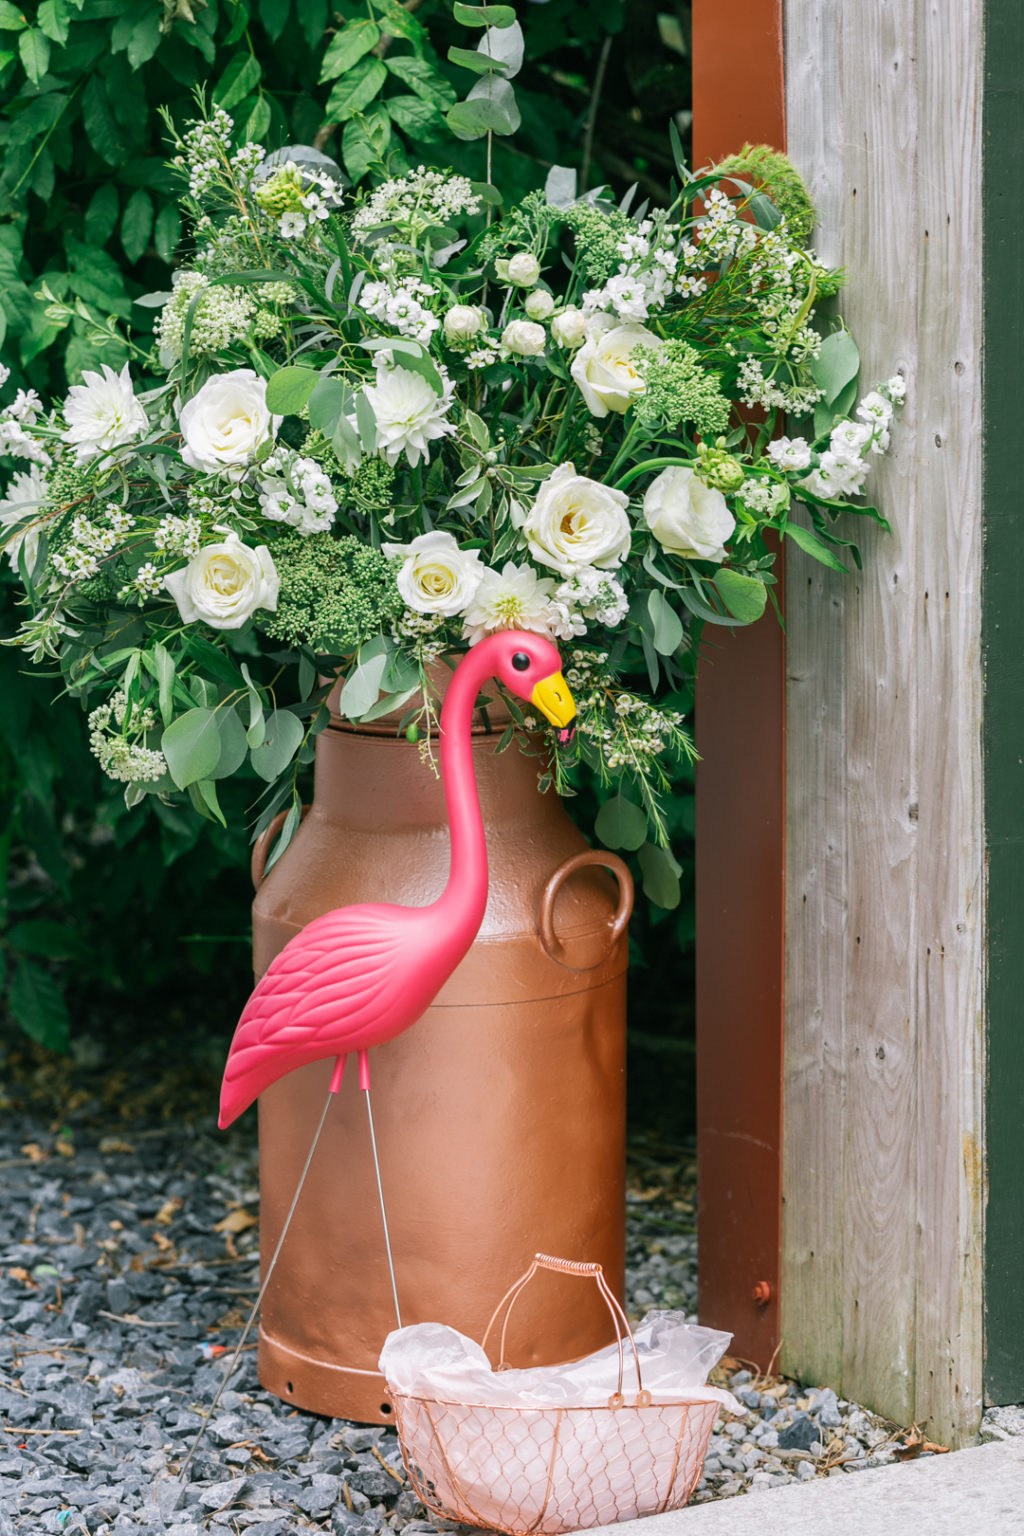 Those milk churns are heirloom, flamingos were added for a touch of fun